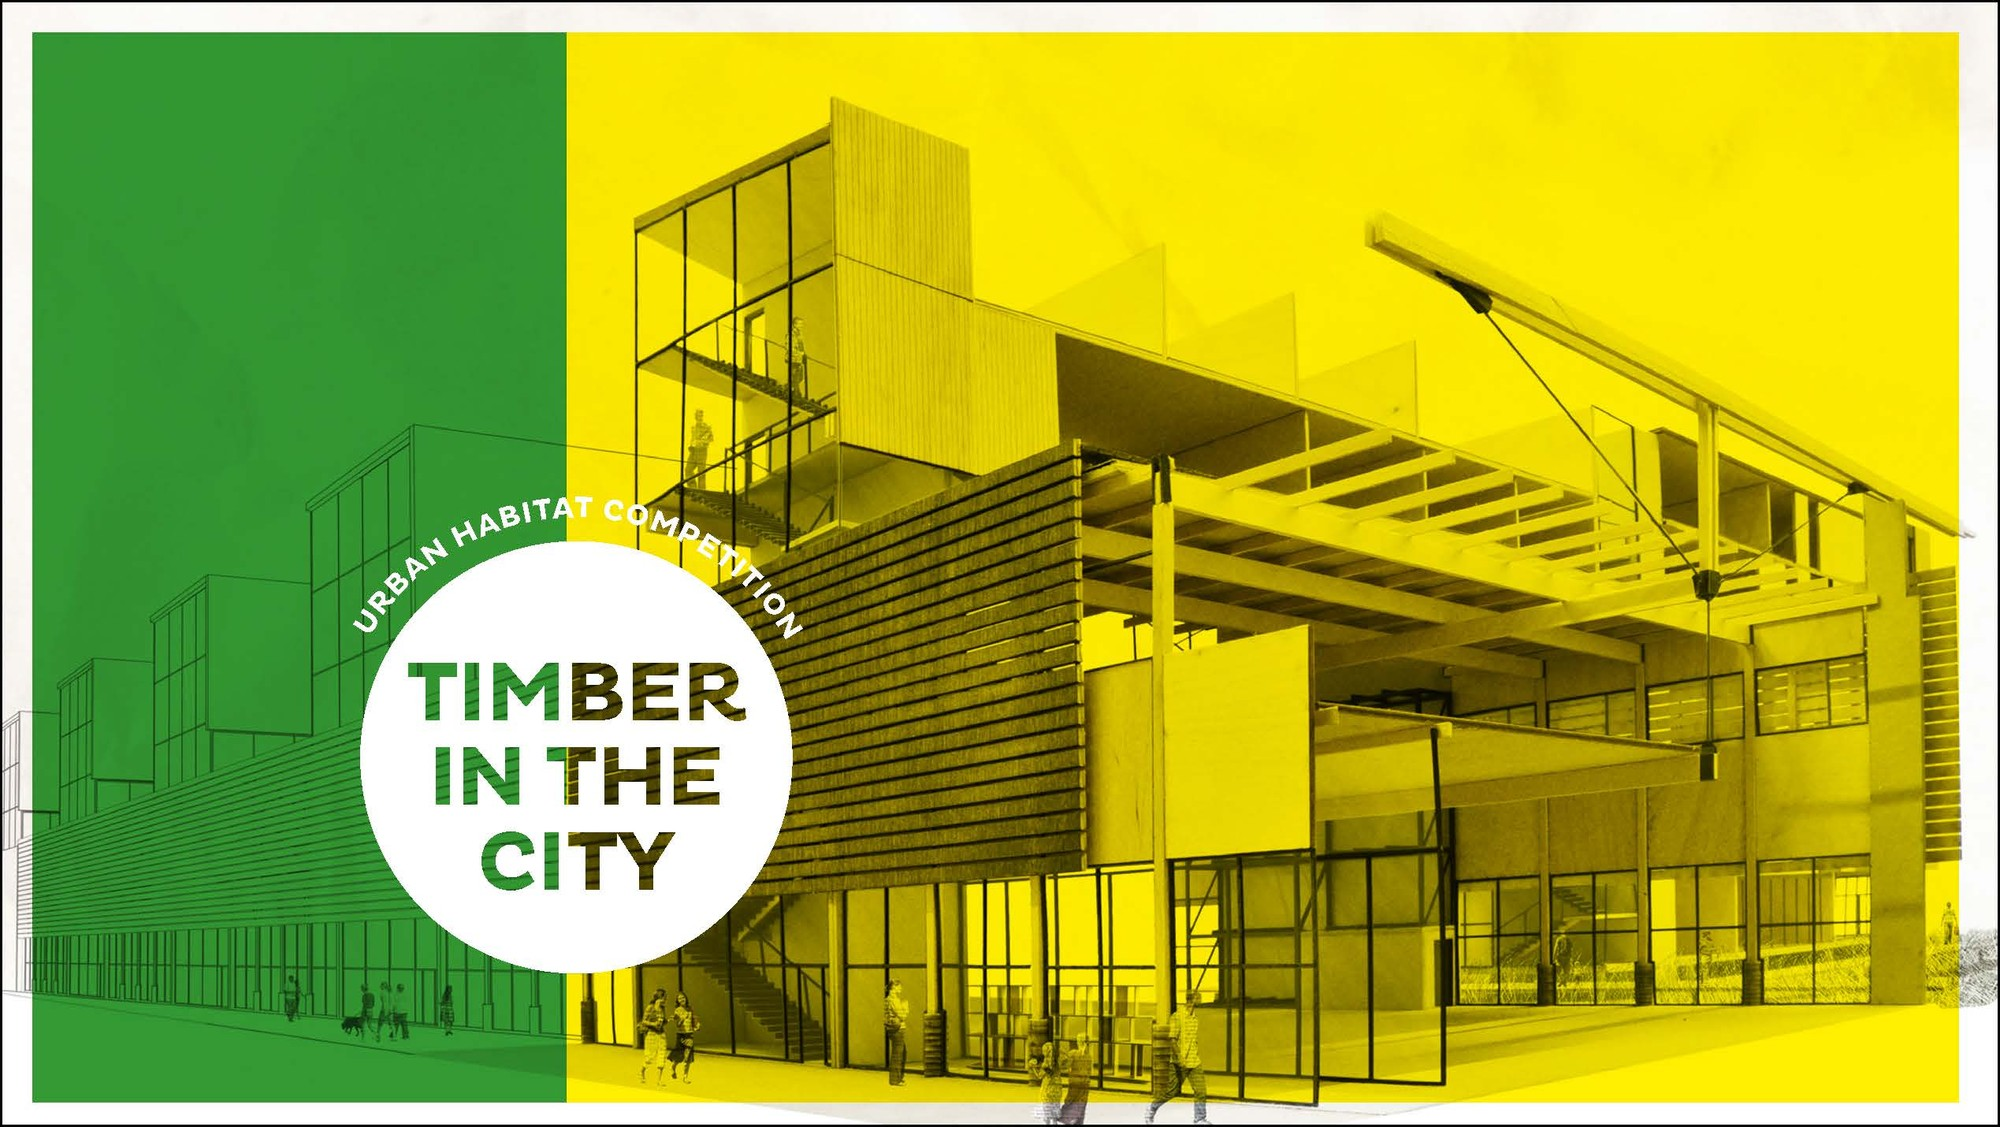 timber in the city urban habitats competition 2015 2016